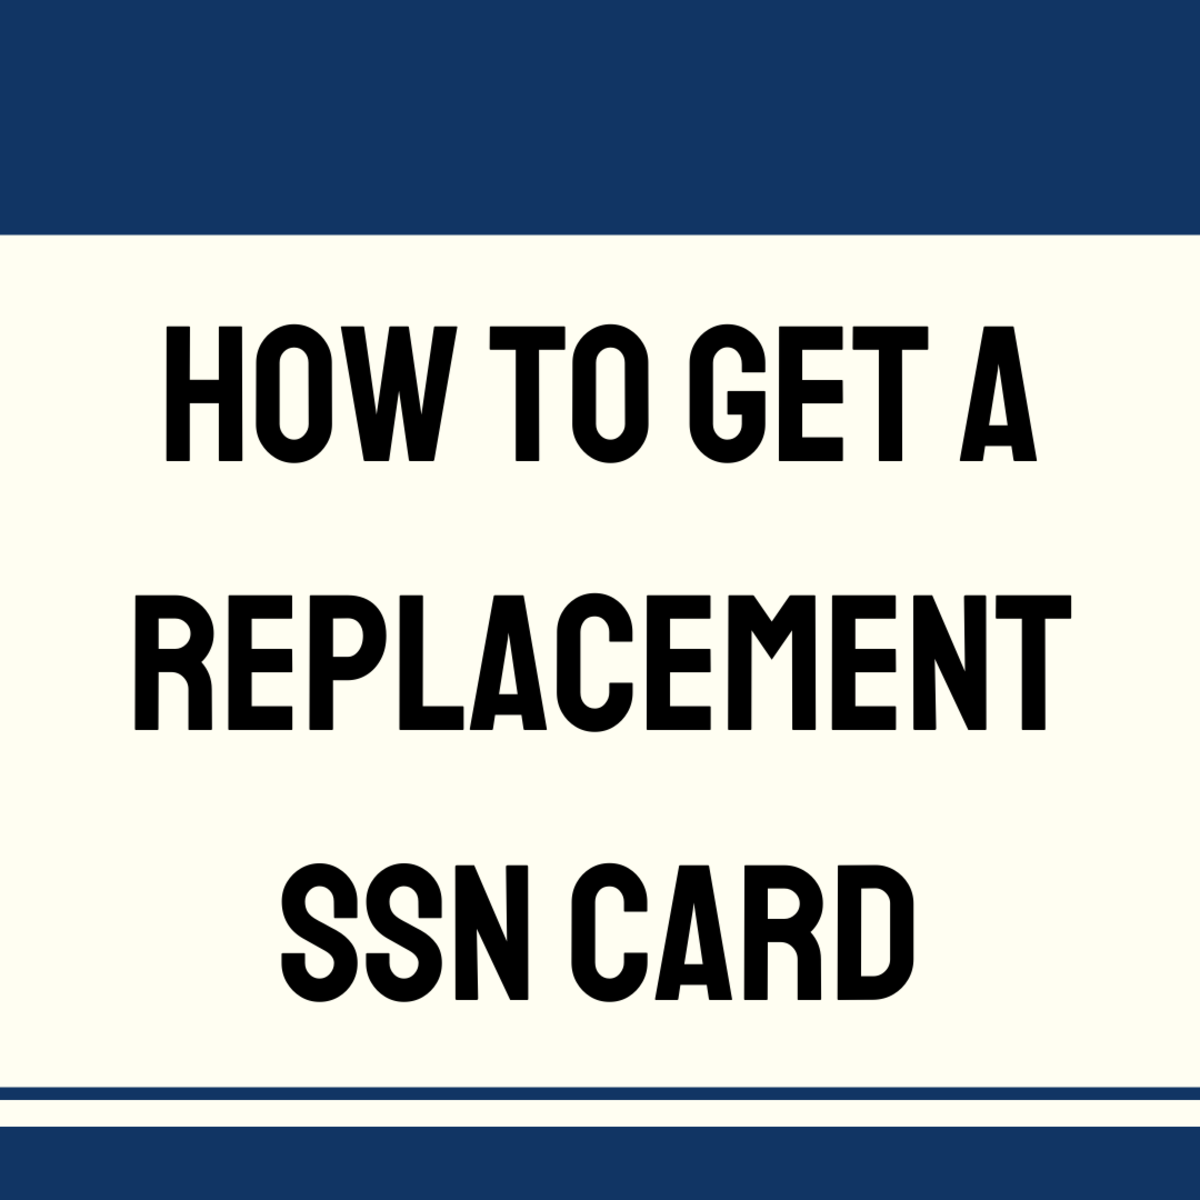 How to Replace a Lost or Stolen Social Security Card